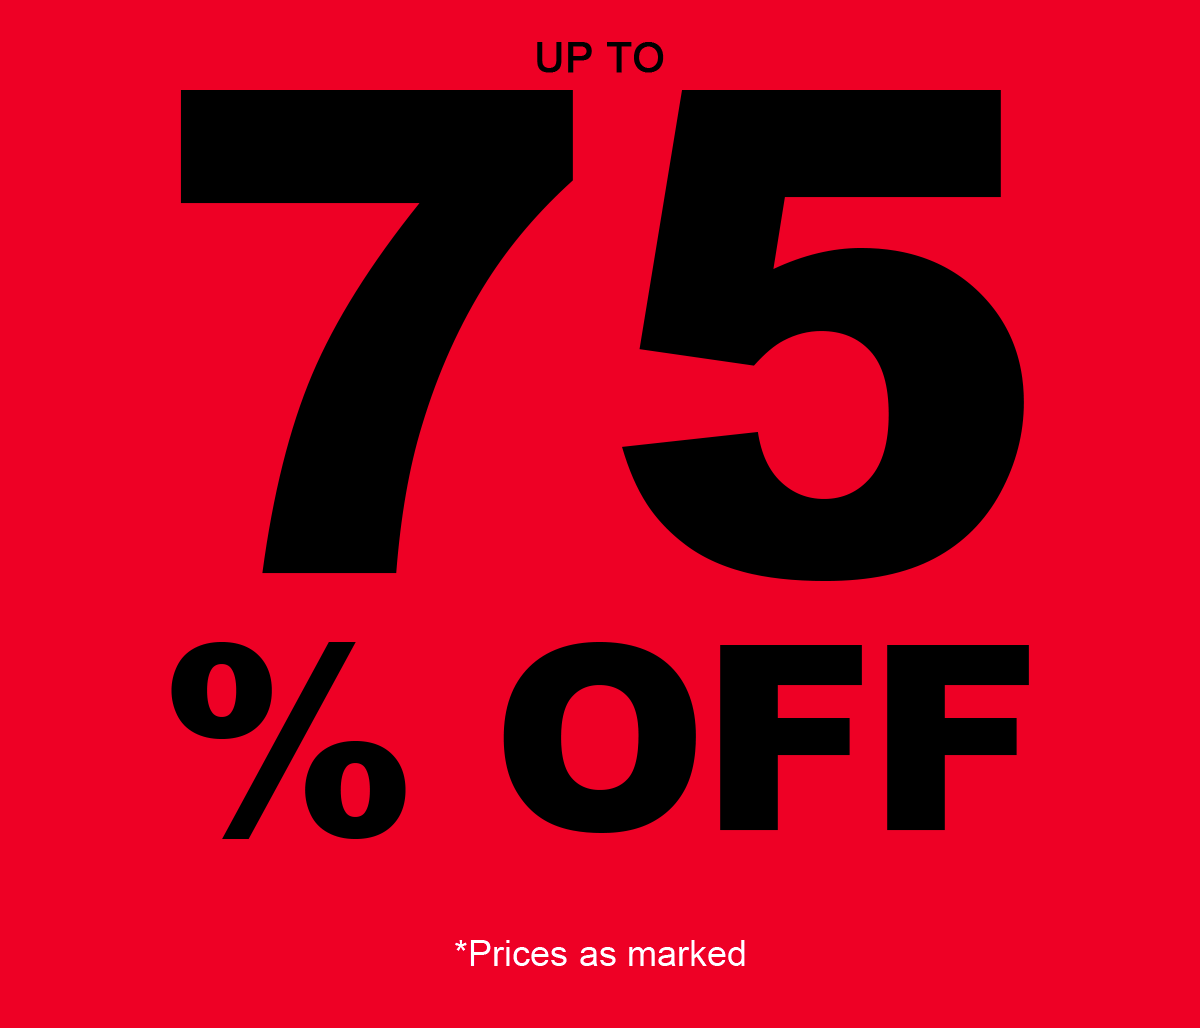 Up to 75% off *Prices as marked